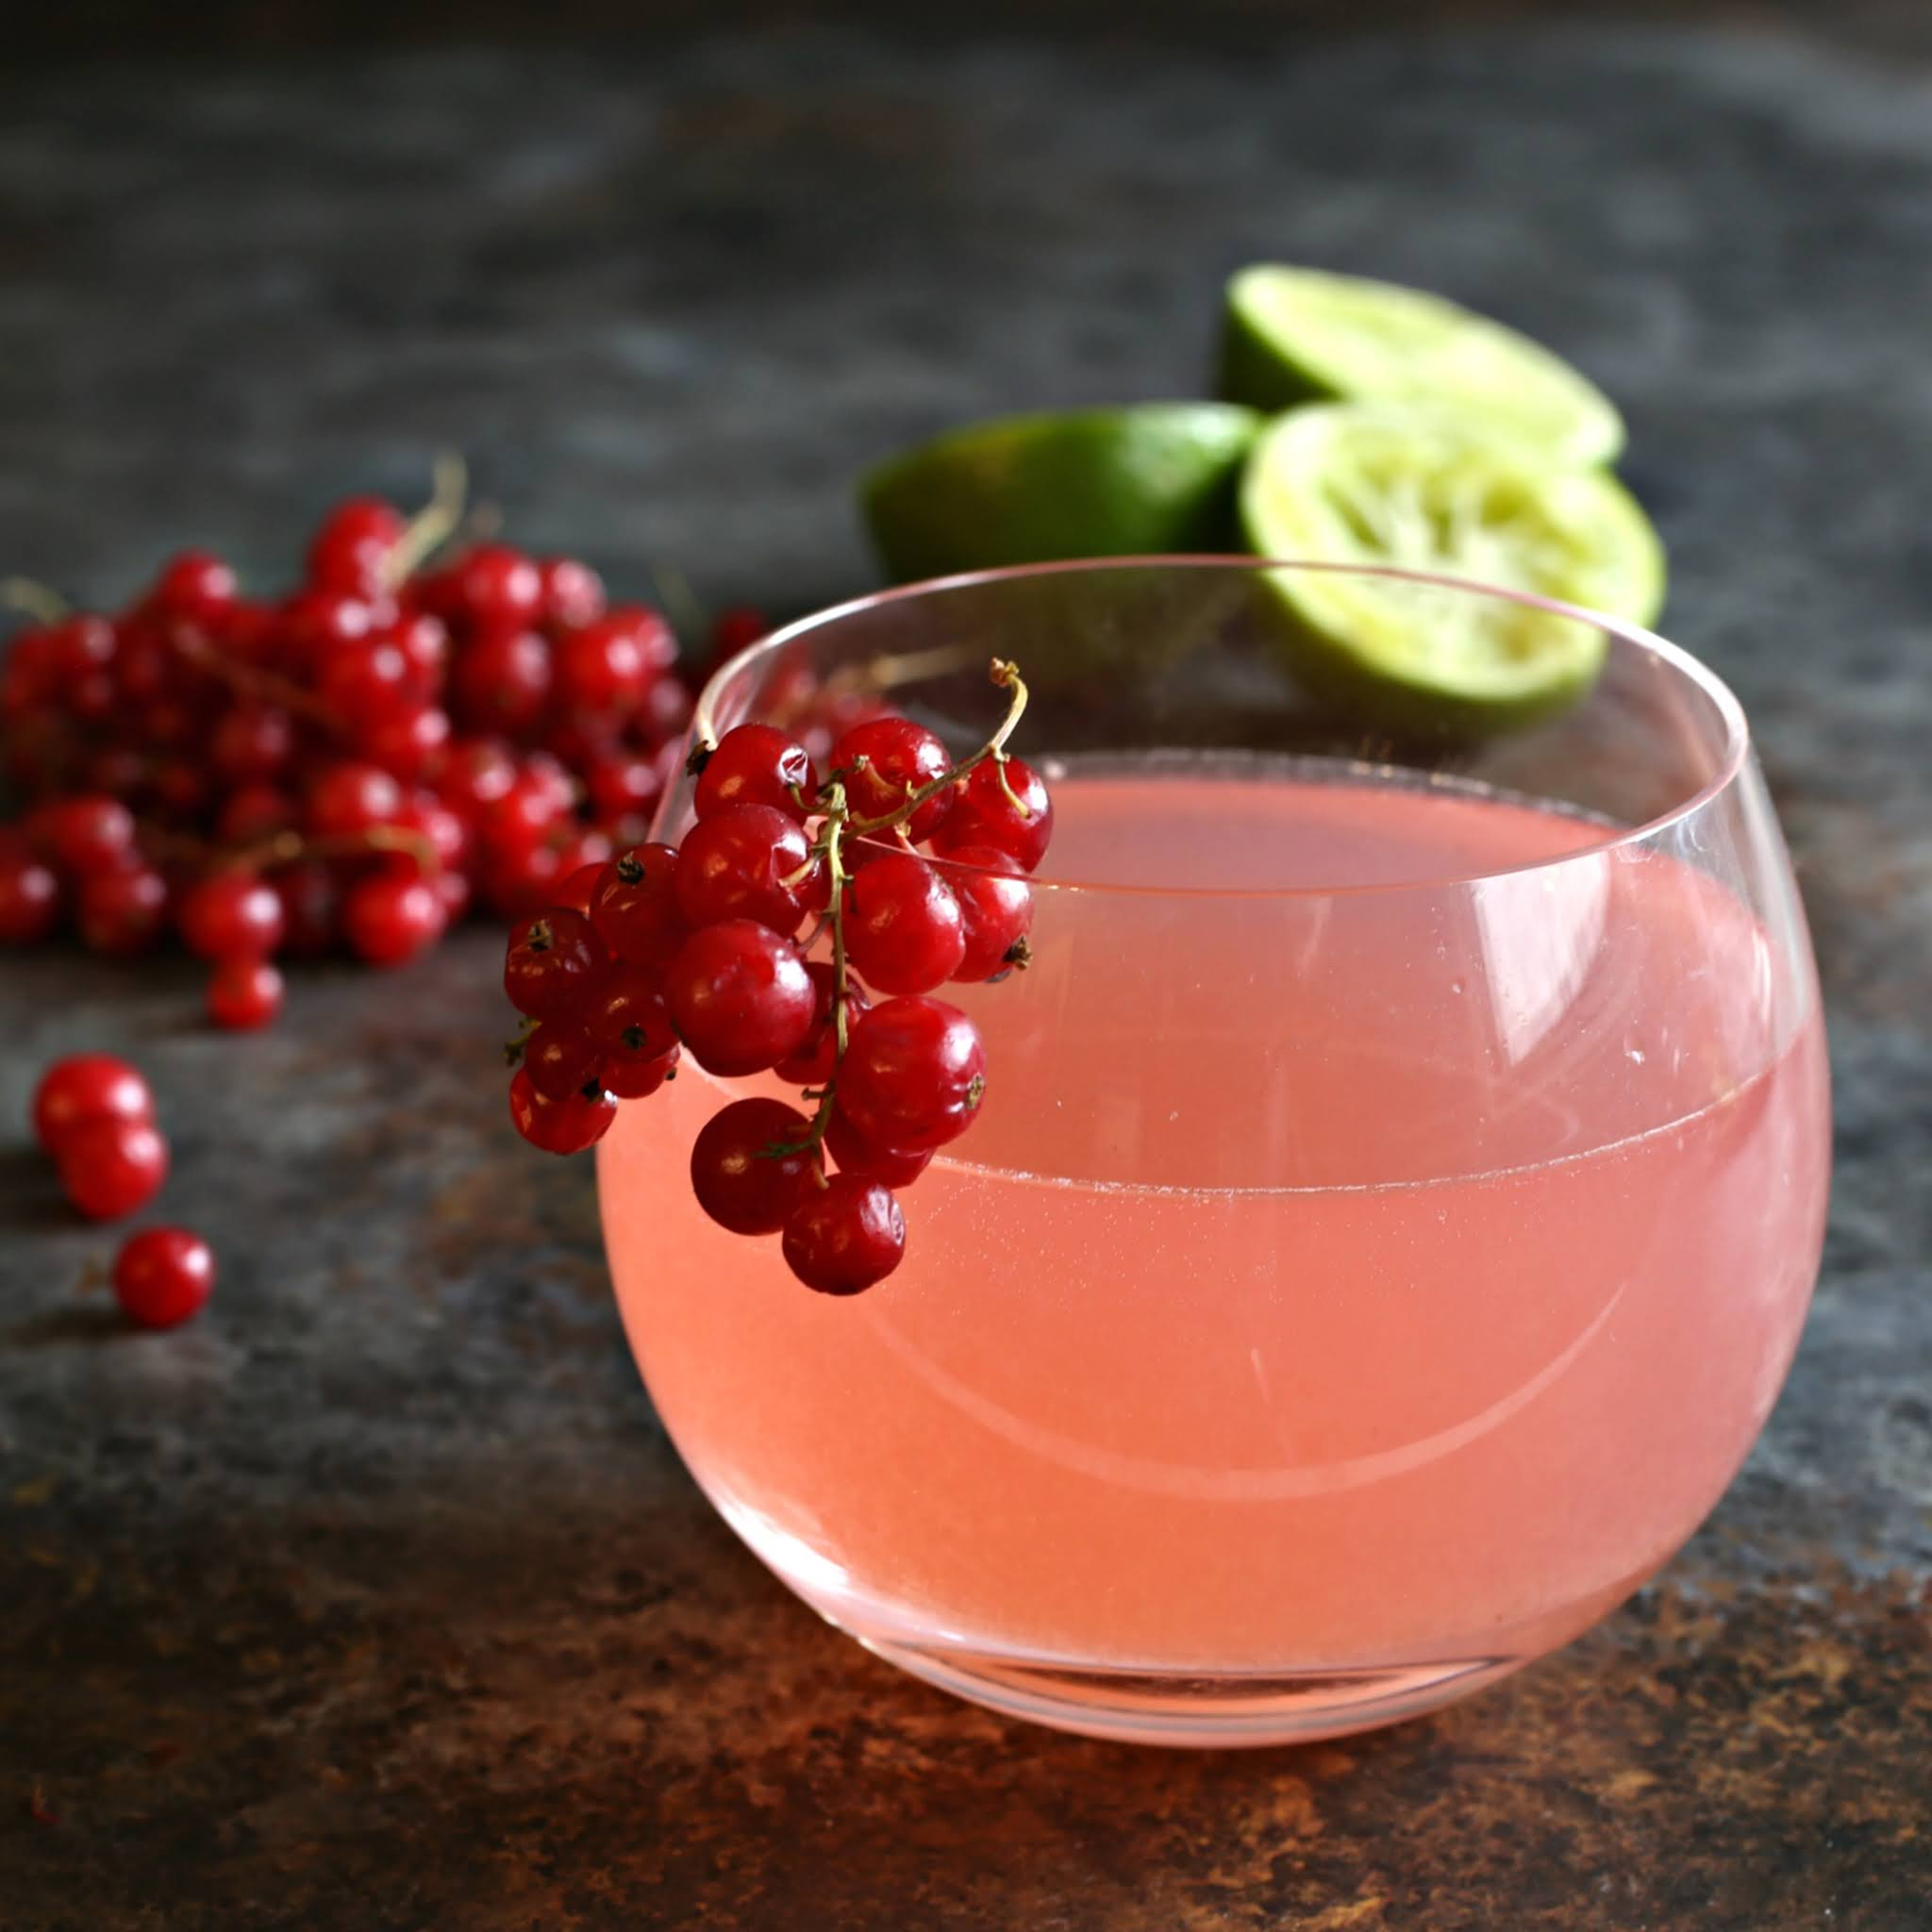 Recipe for a vodka cocktail flavored with red currant syrup, lime and orange liqueur.